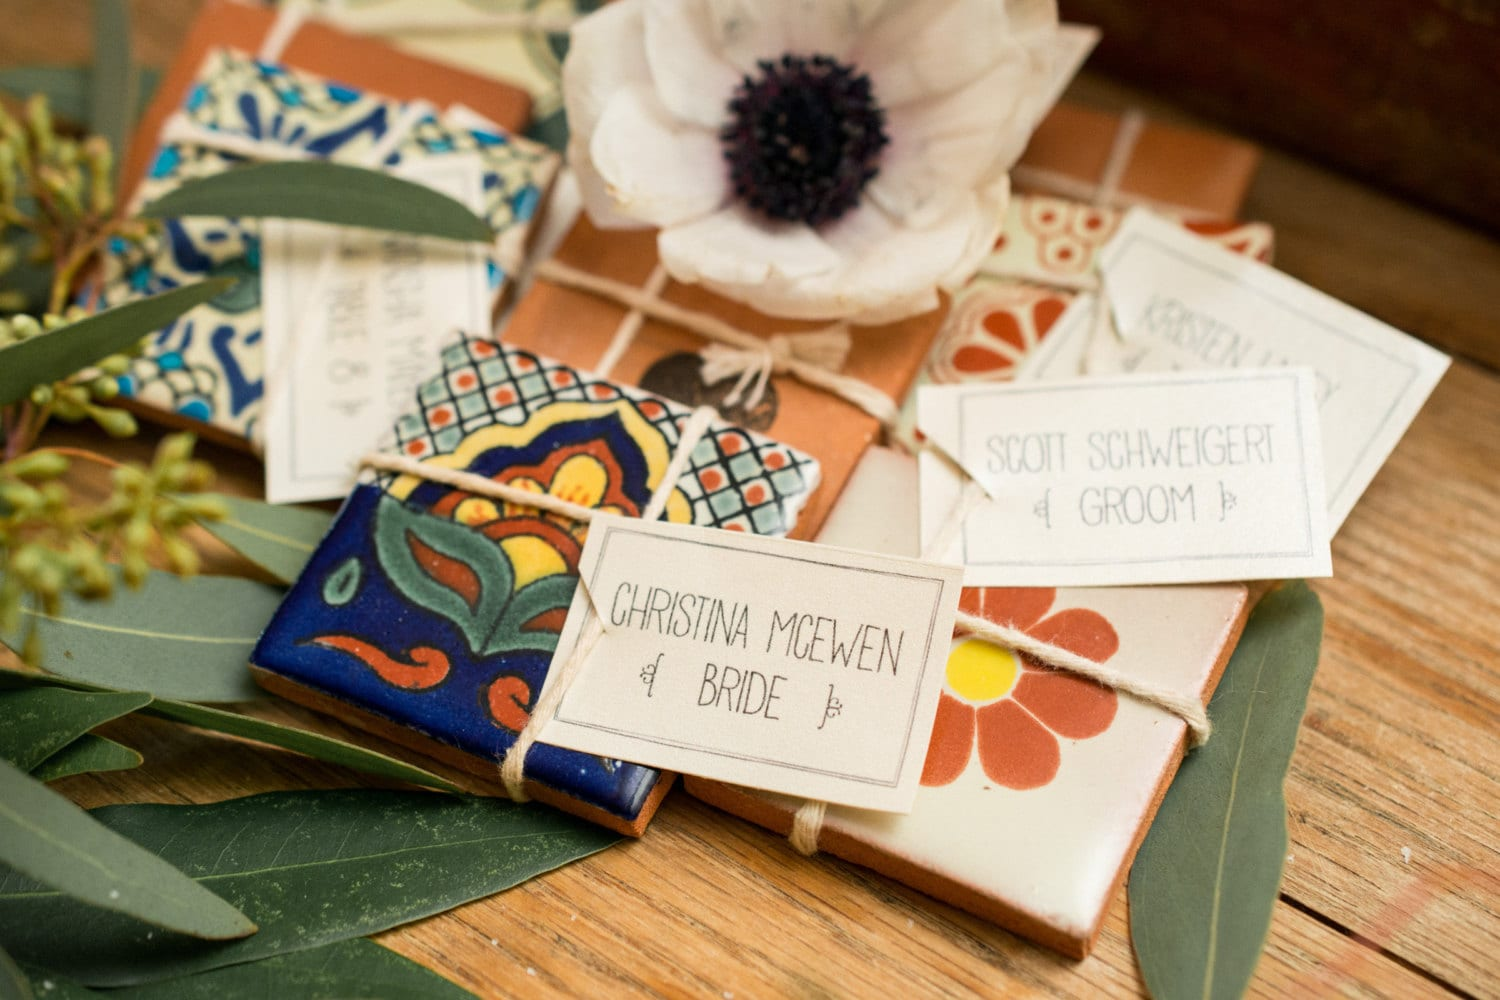 100 Small Mexican Spanish Tiles For Wedding Favors Or Gifts